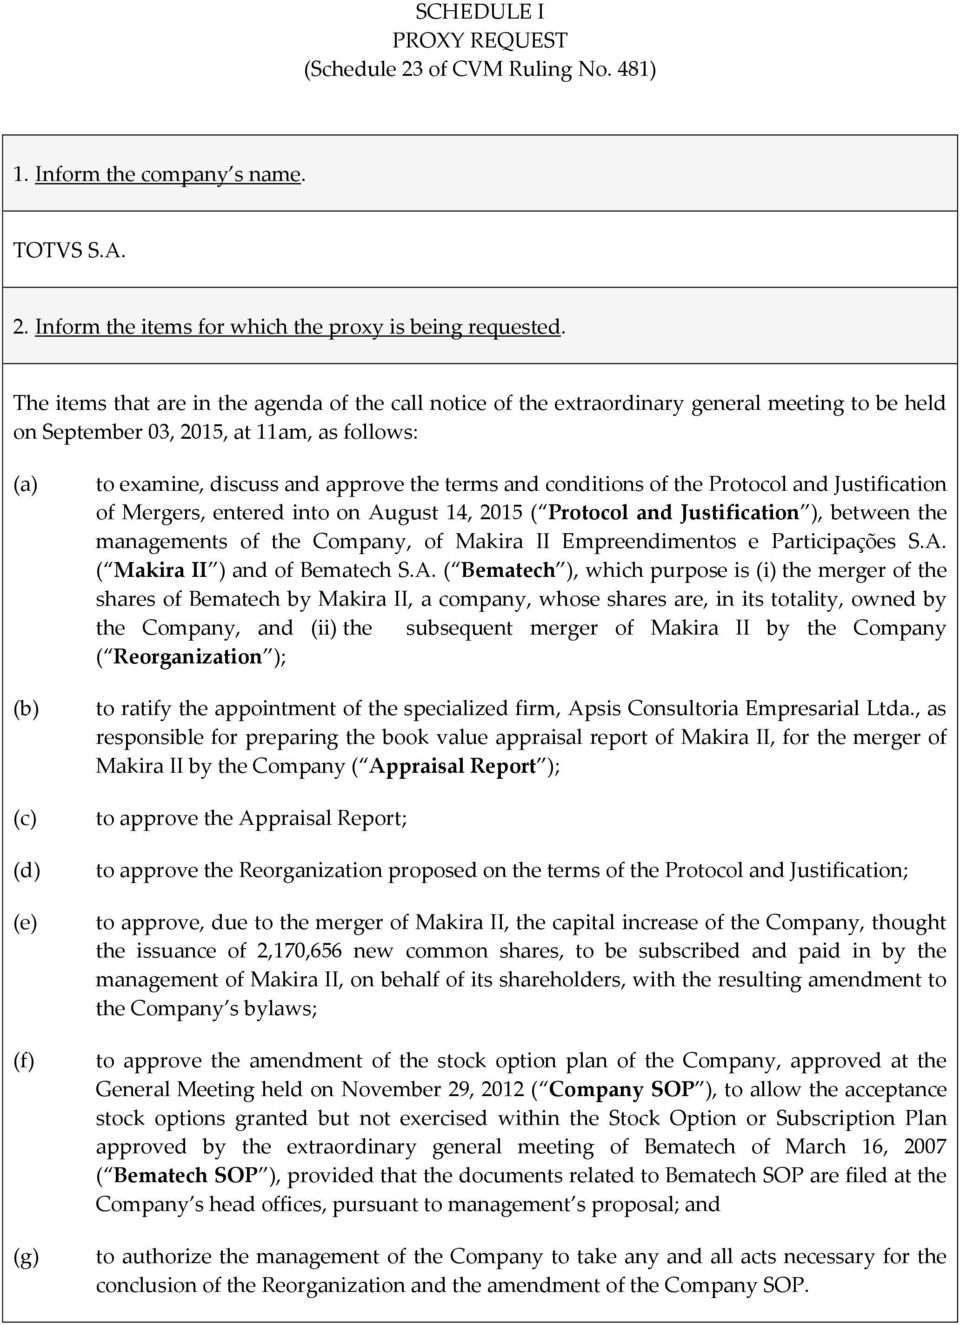 approve the terms and conditions of the Protocol and Justification of Mergers, entered into on August 14, 2015 ( Protocol and Justification ), between the managements of the Company, of Makira II